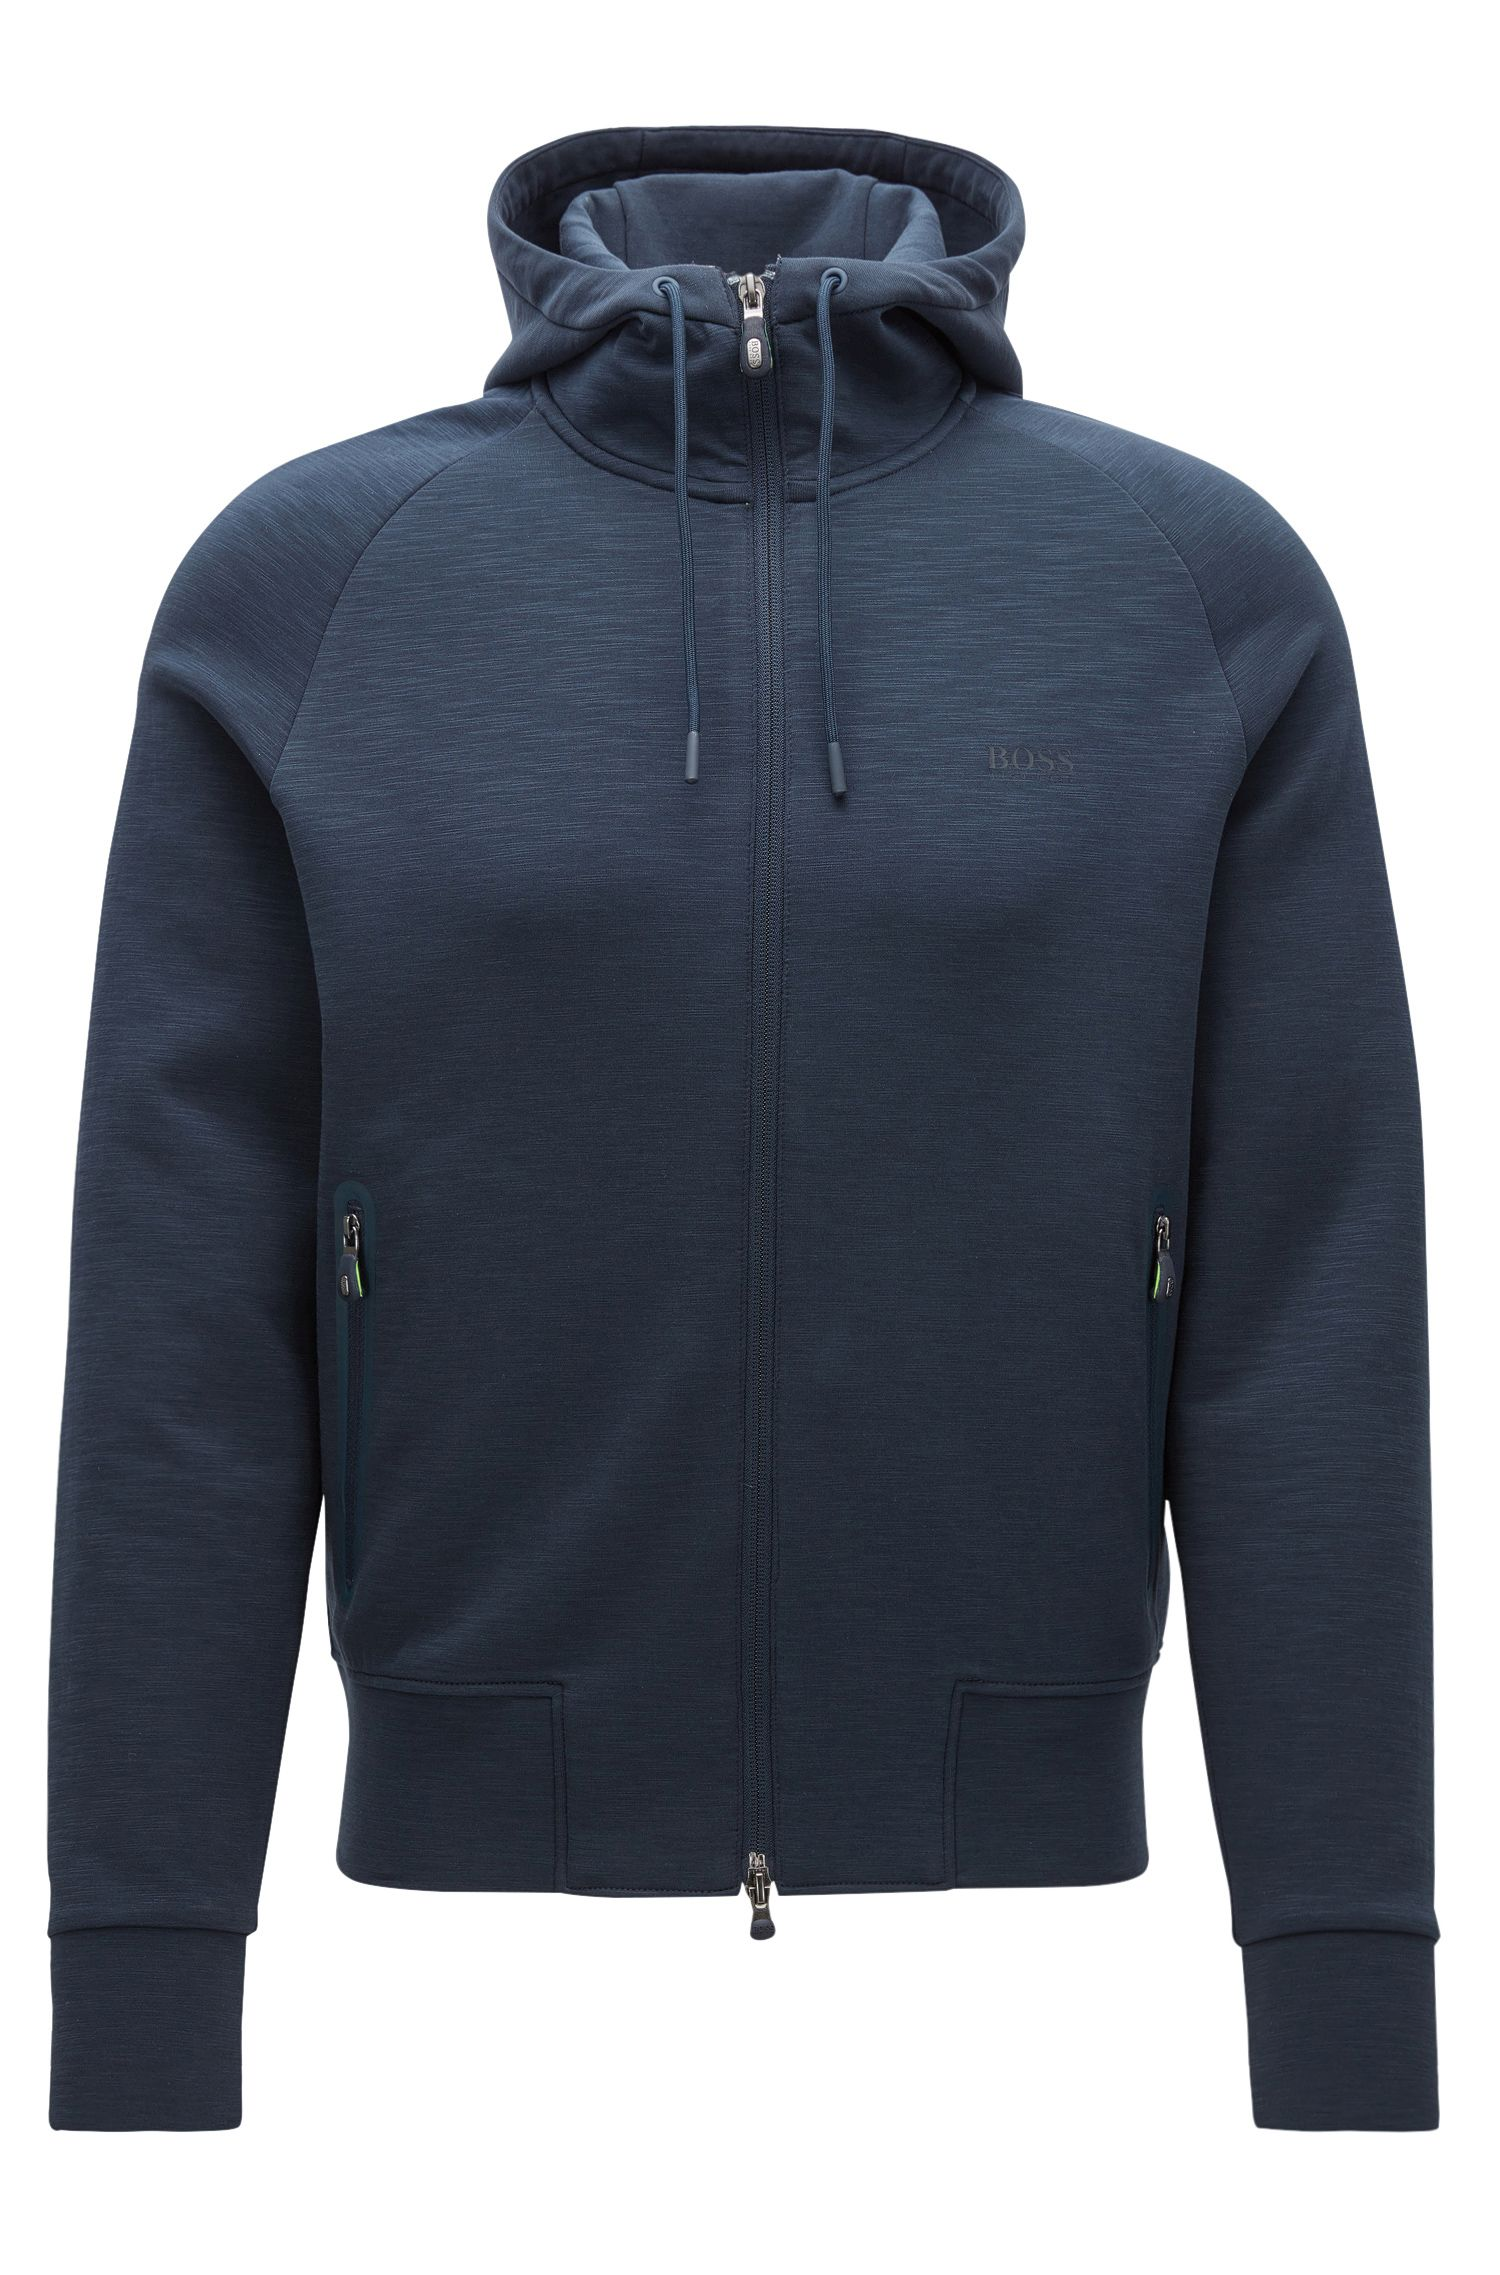 Slim-fit hooded jacket in a cotton mix